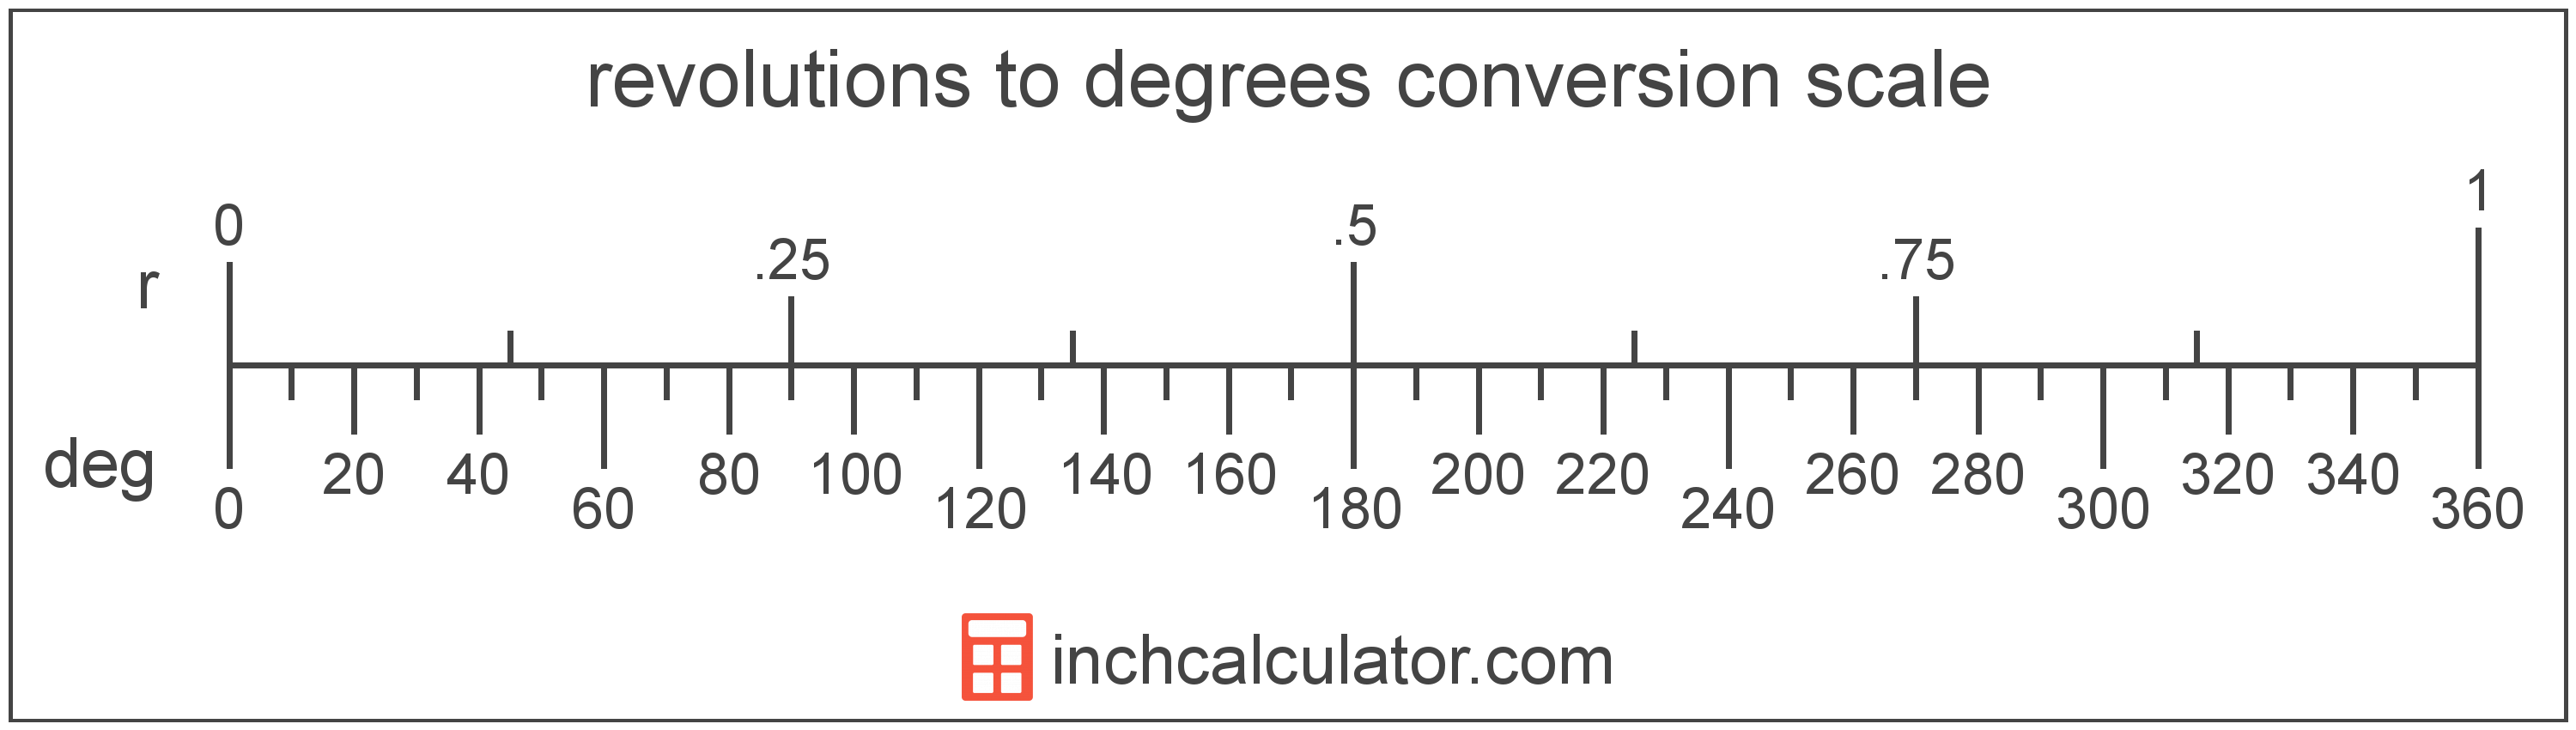 conversion scale showing revolutions and equivalent degrees angle values